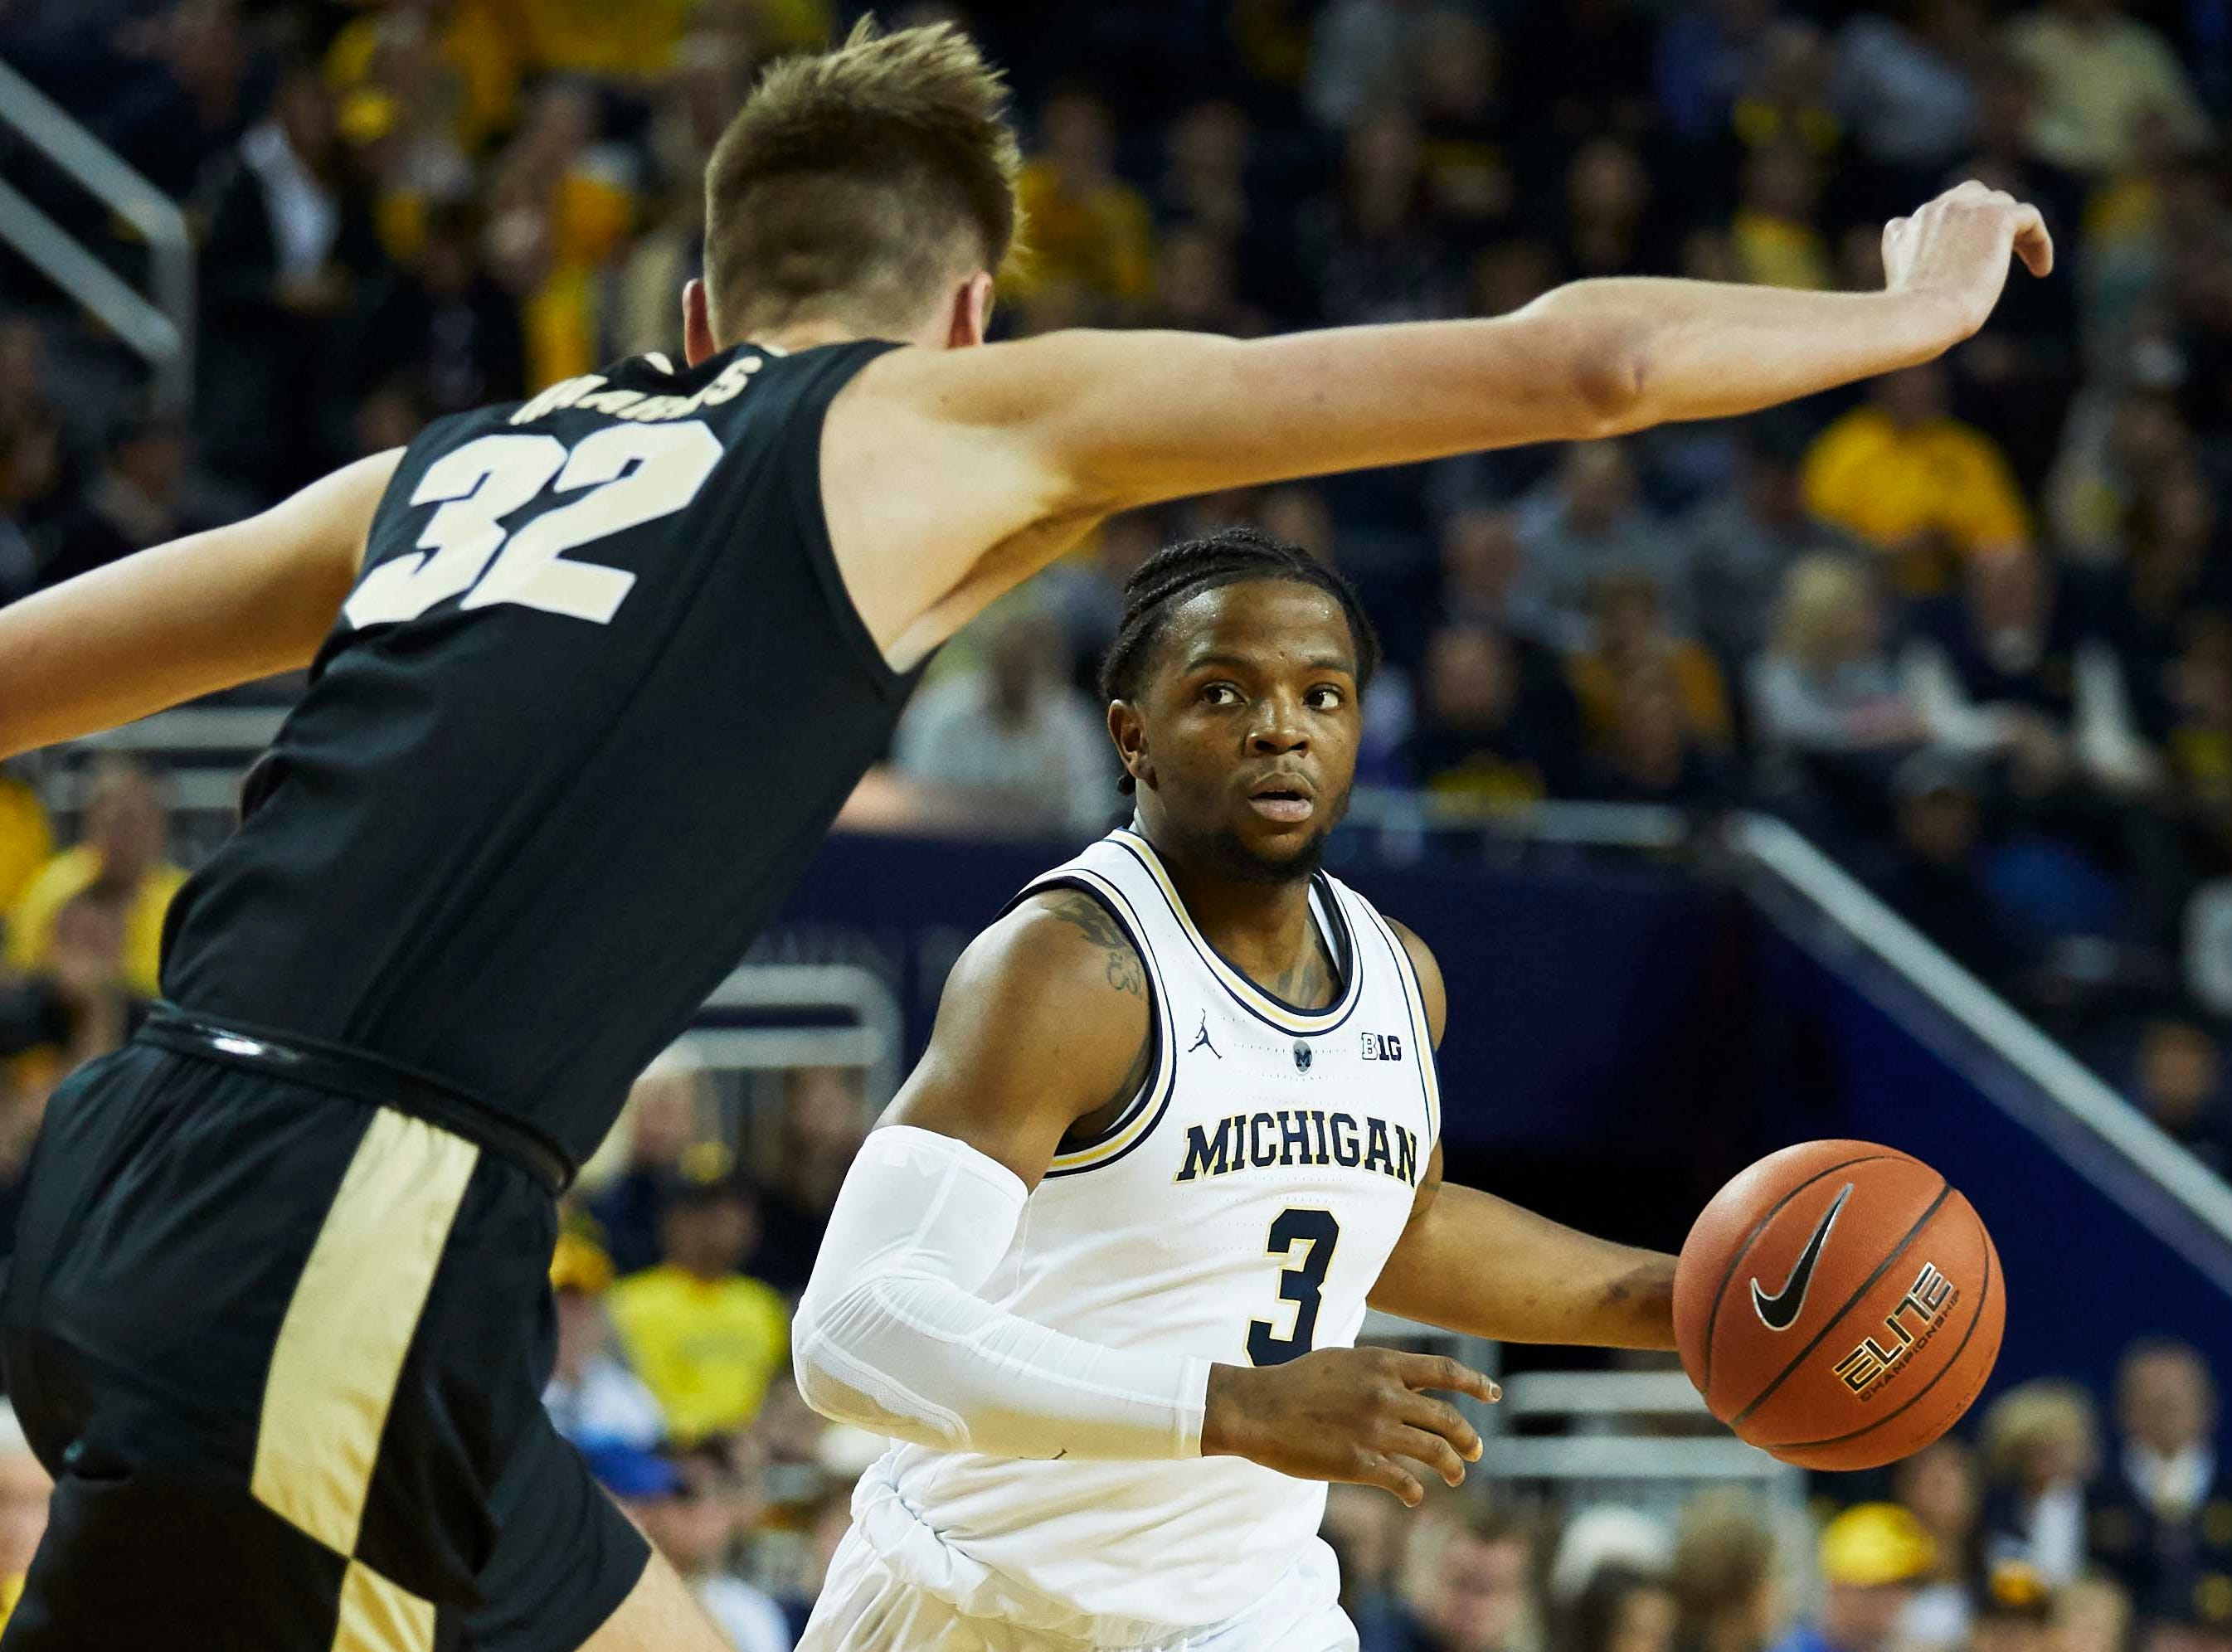 Dec 1, 2018; Ann Arbor, MI, USA; Michigan Wolverines guard Zavier Simpson (3) dribbles defended by Purdue Boilermakers center Matt Haarms (32) in the first half at Crisler Center. Mandatory Credit: Rick Osentoski-USA TODAY Sports